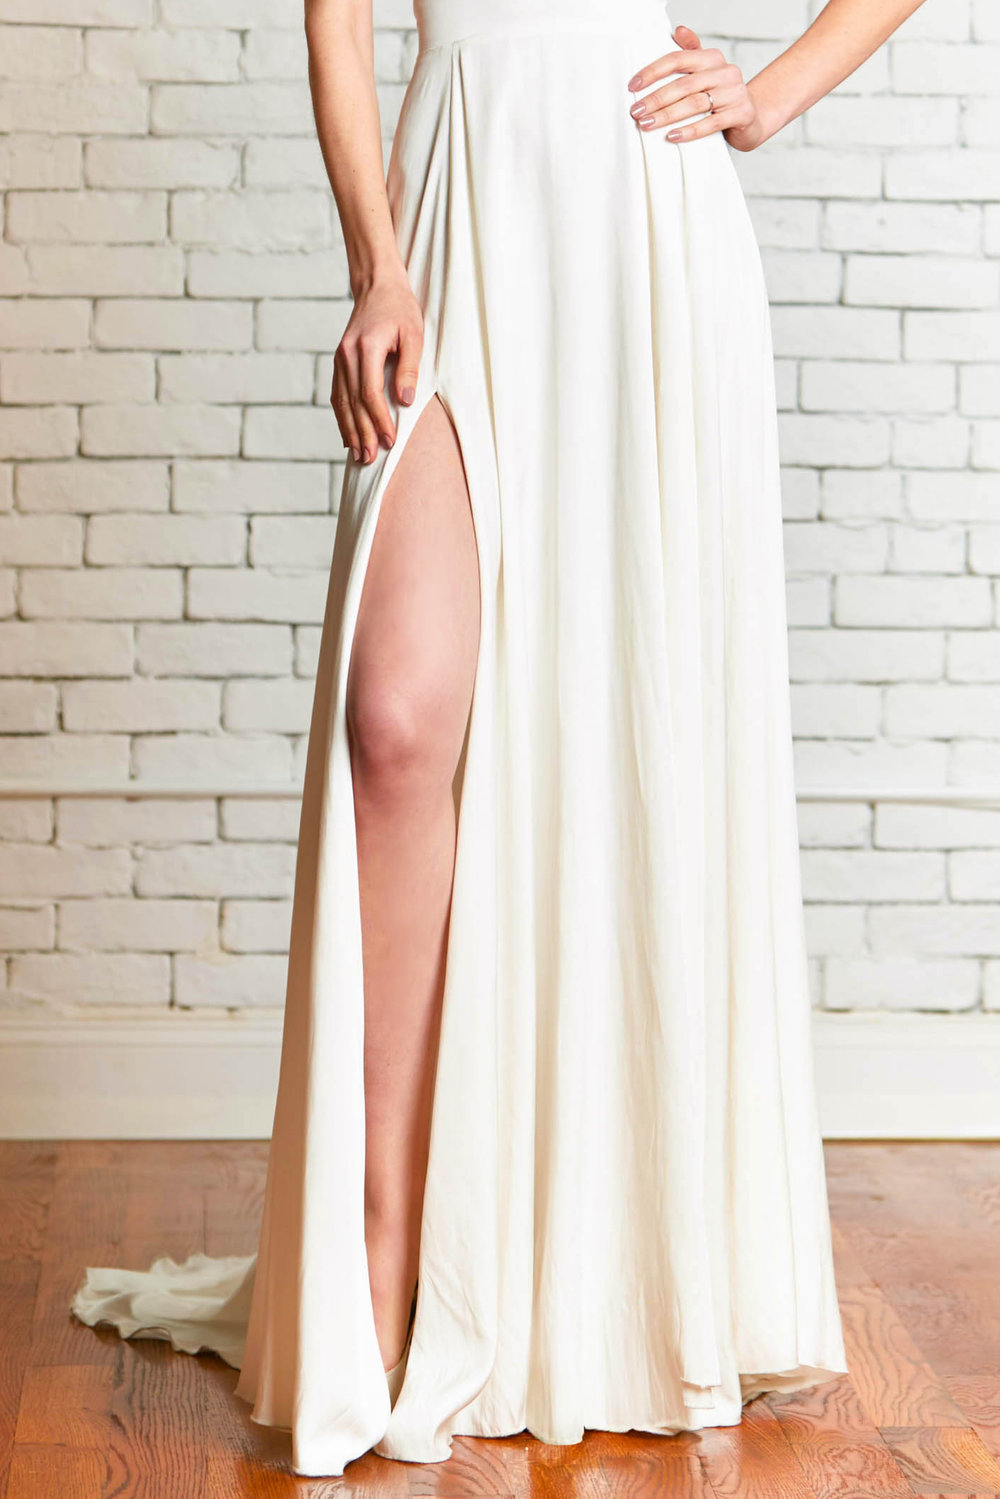 Lincoln_front_A-line_Skirt_with_Slit_Modern_Wedding_Separates.jpg